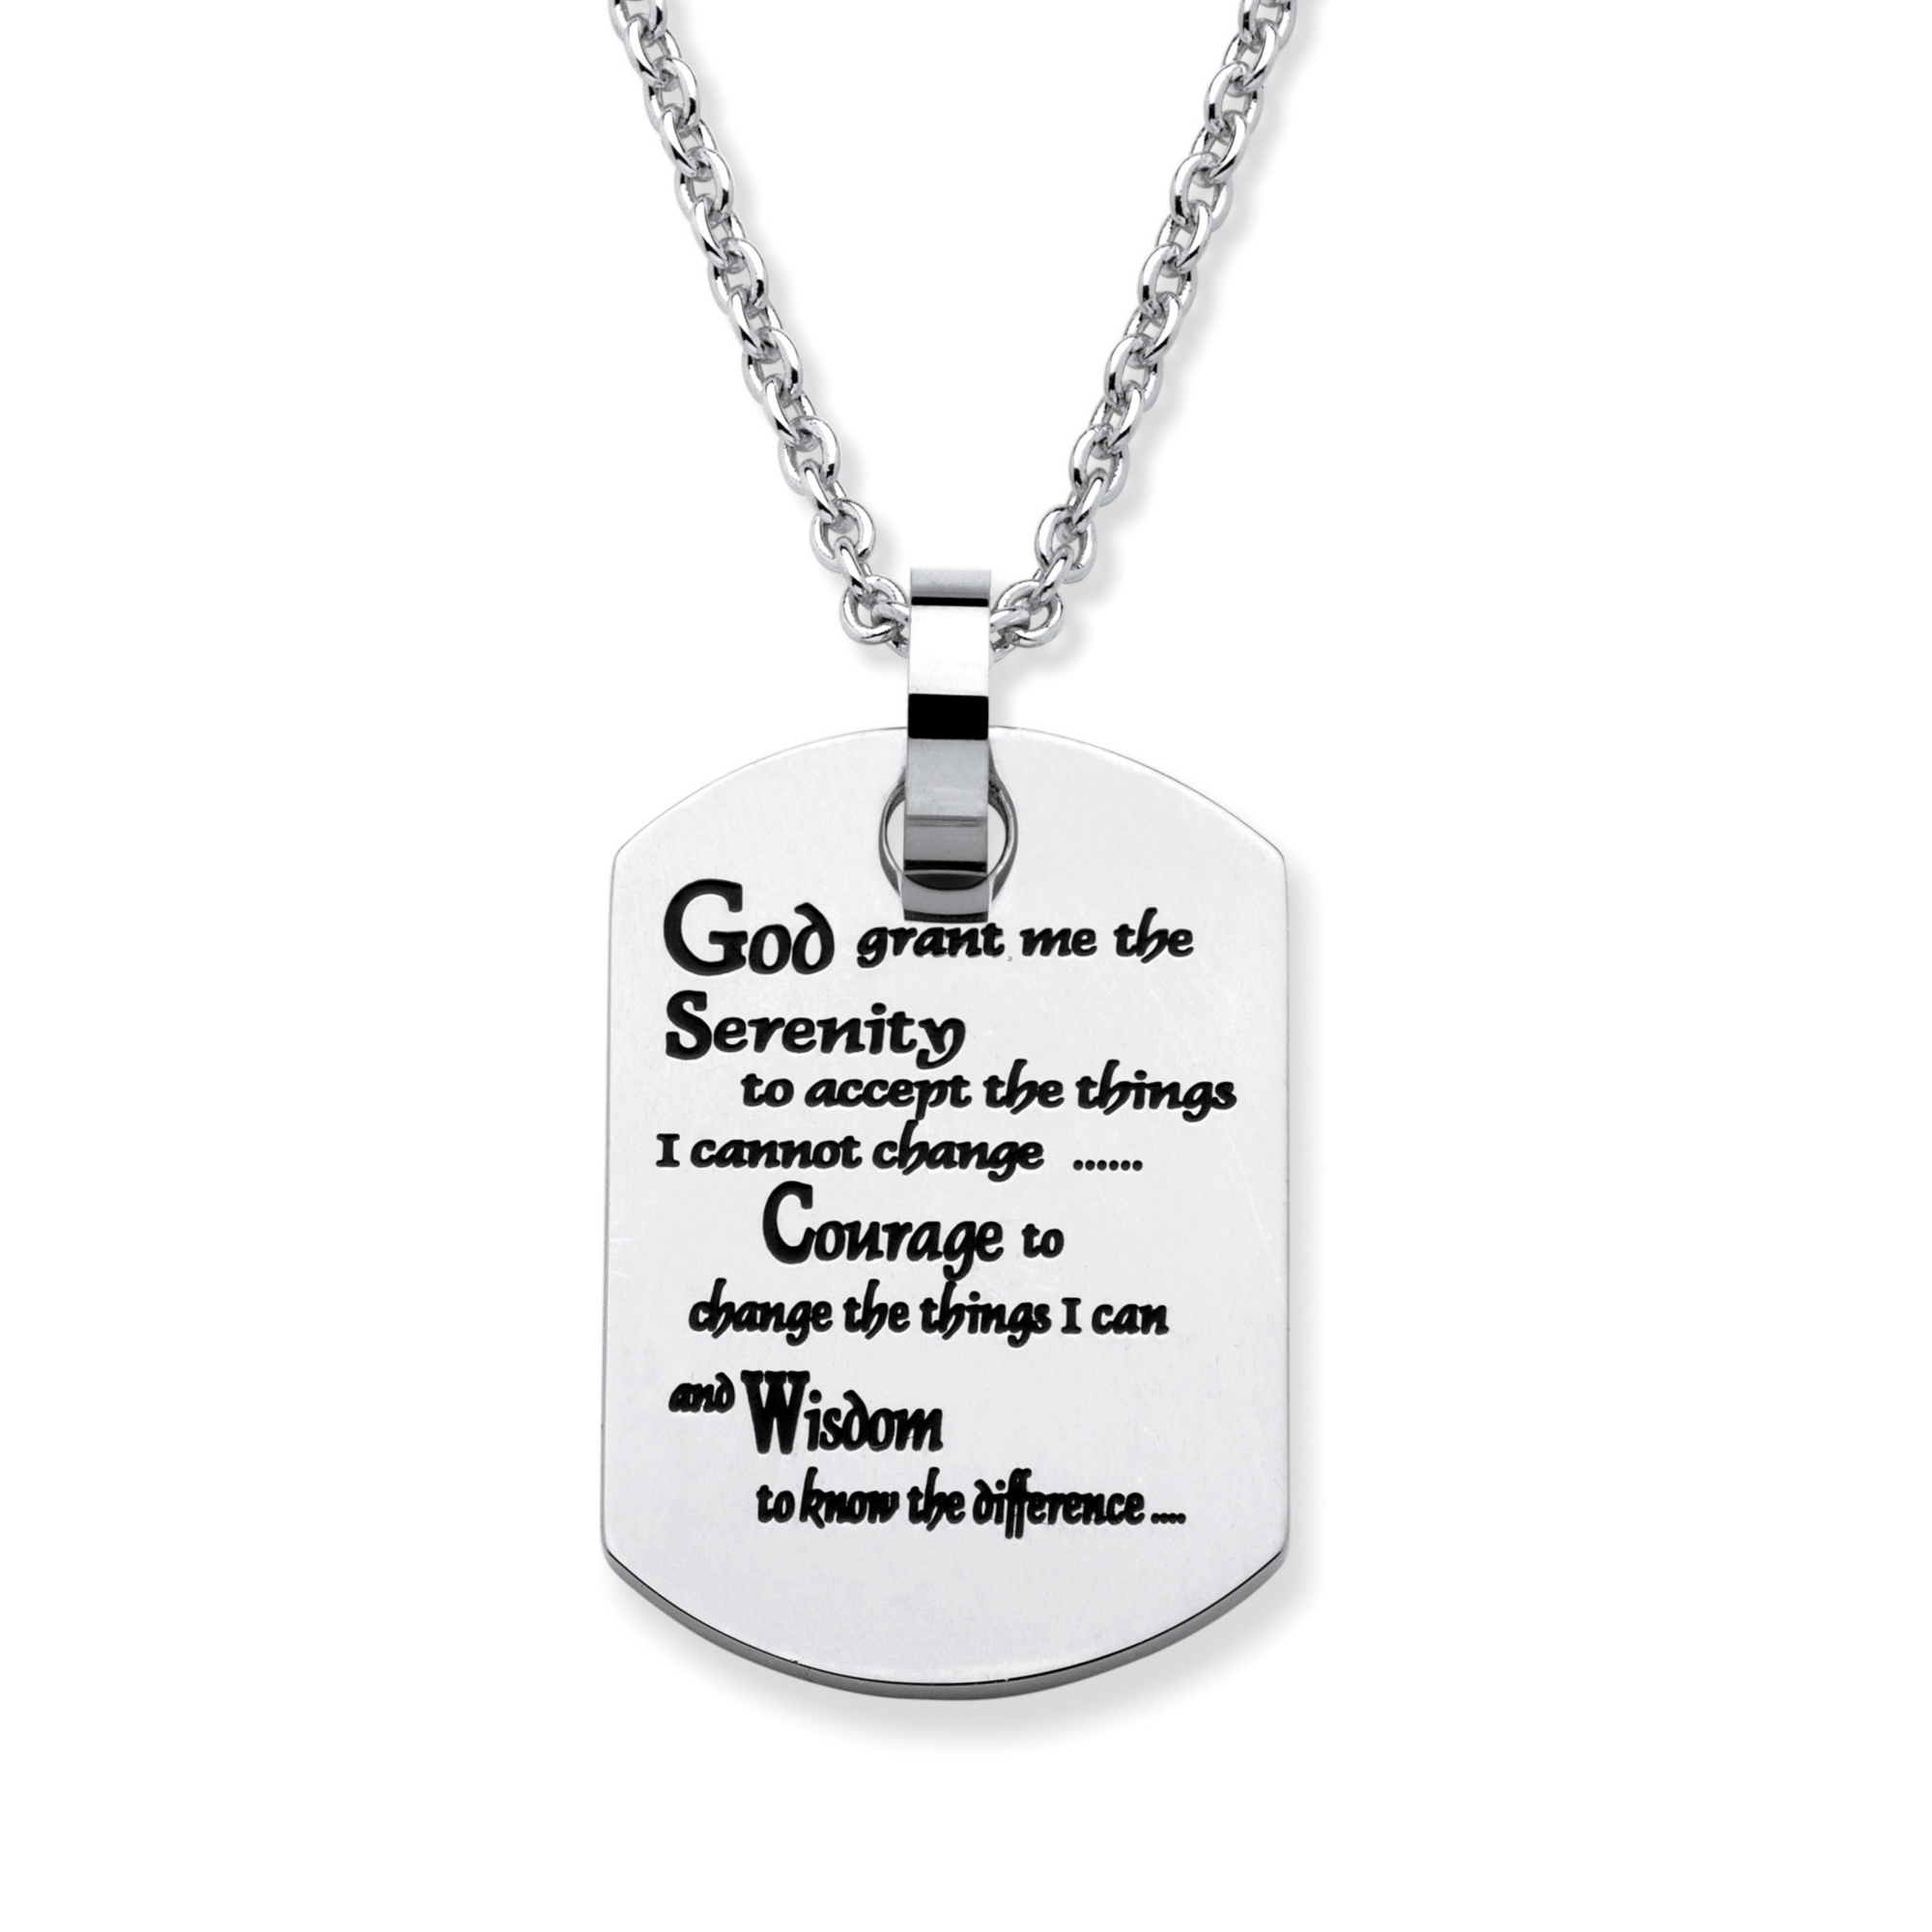 necklace prayer heart serenity magnifier pendants pendant